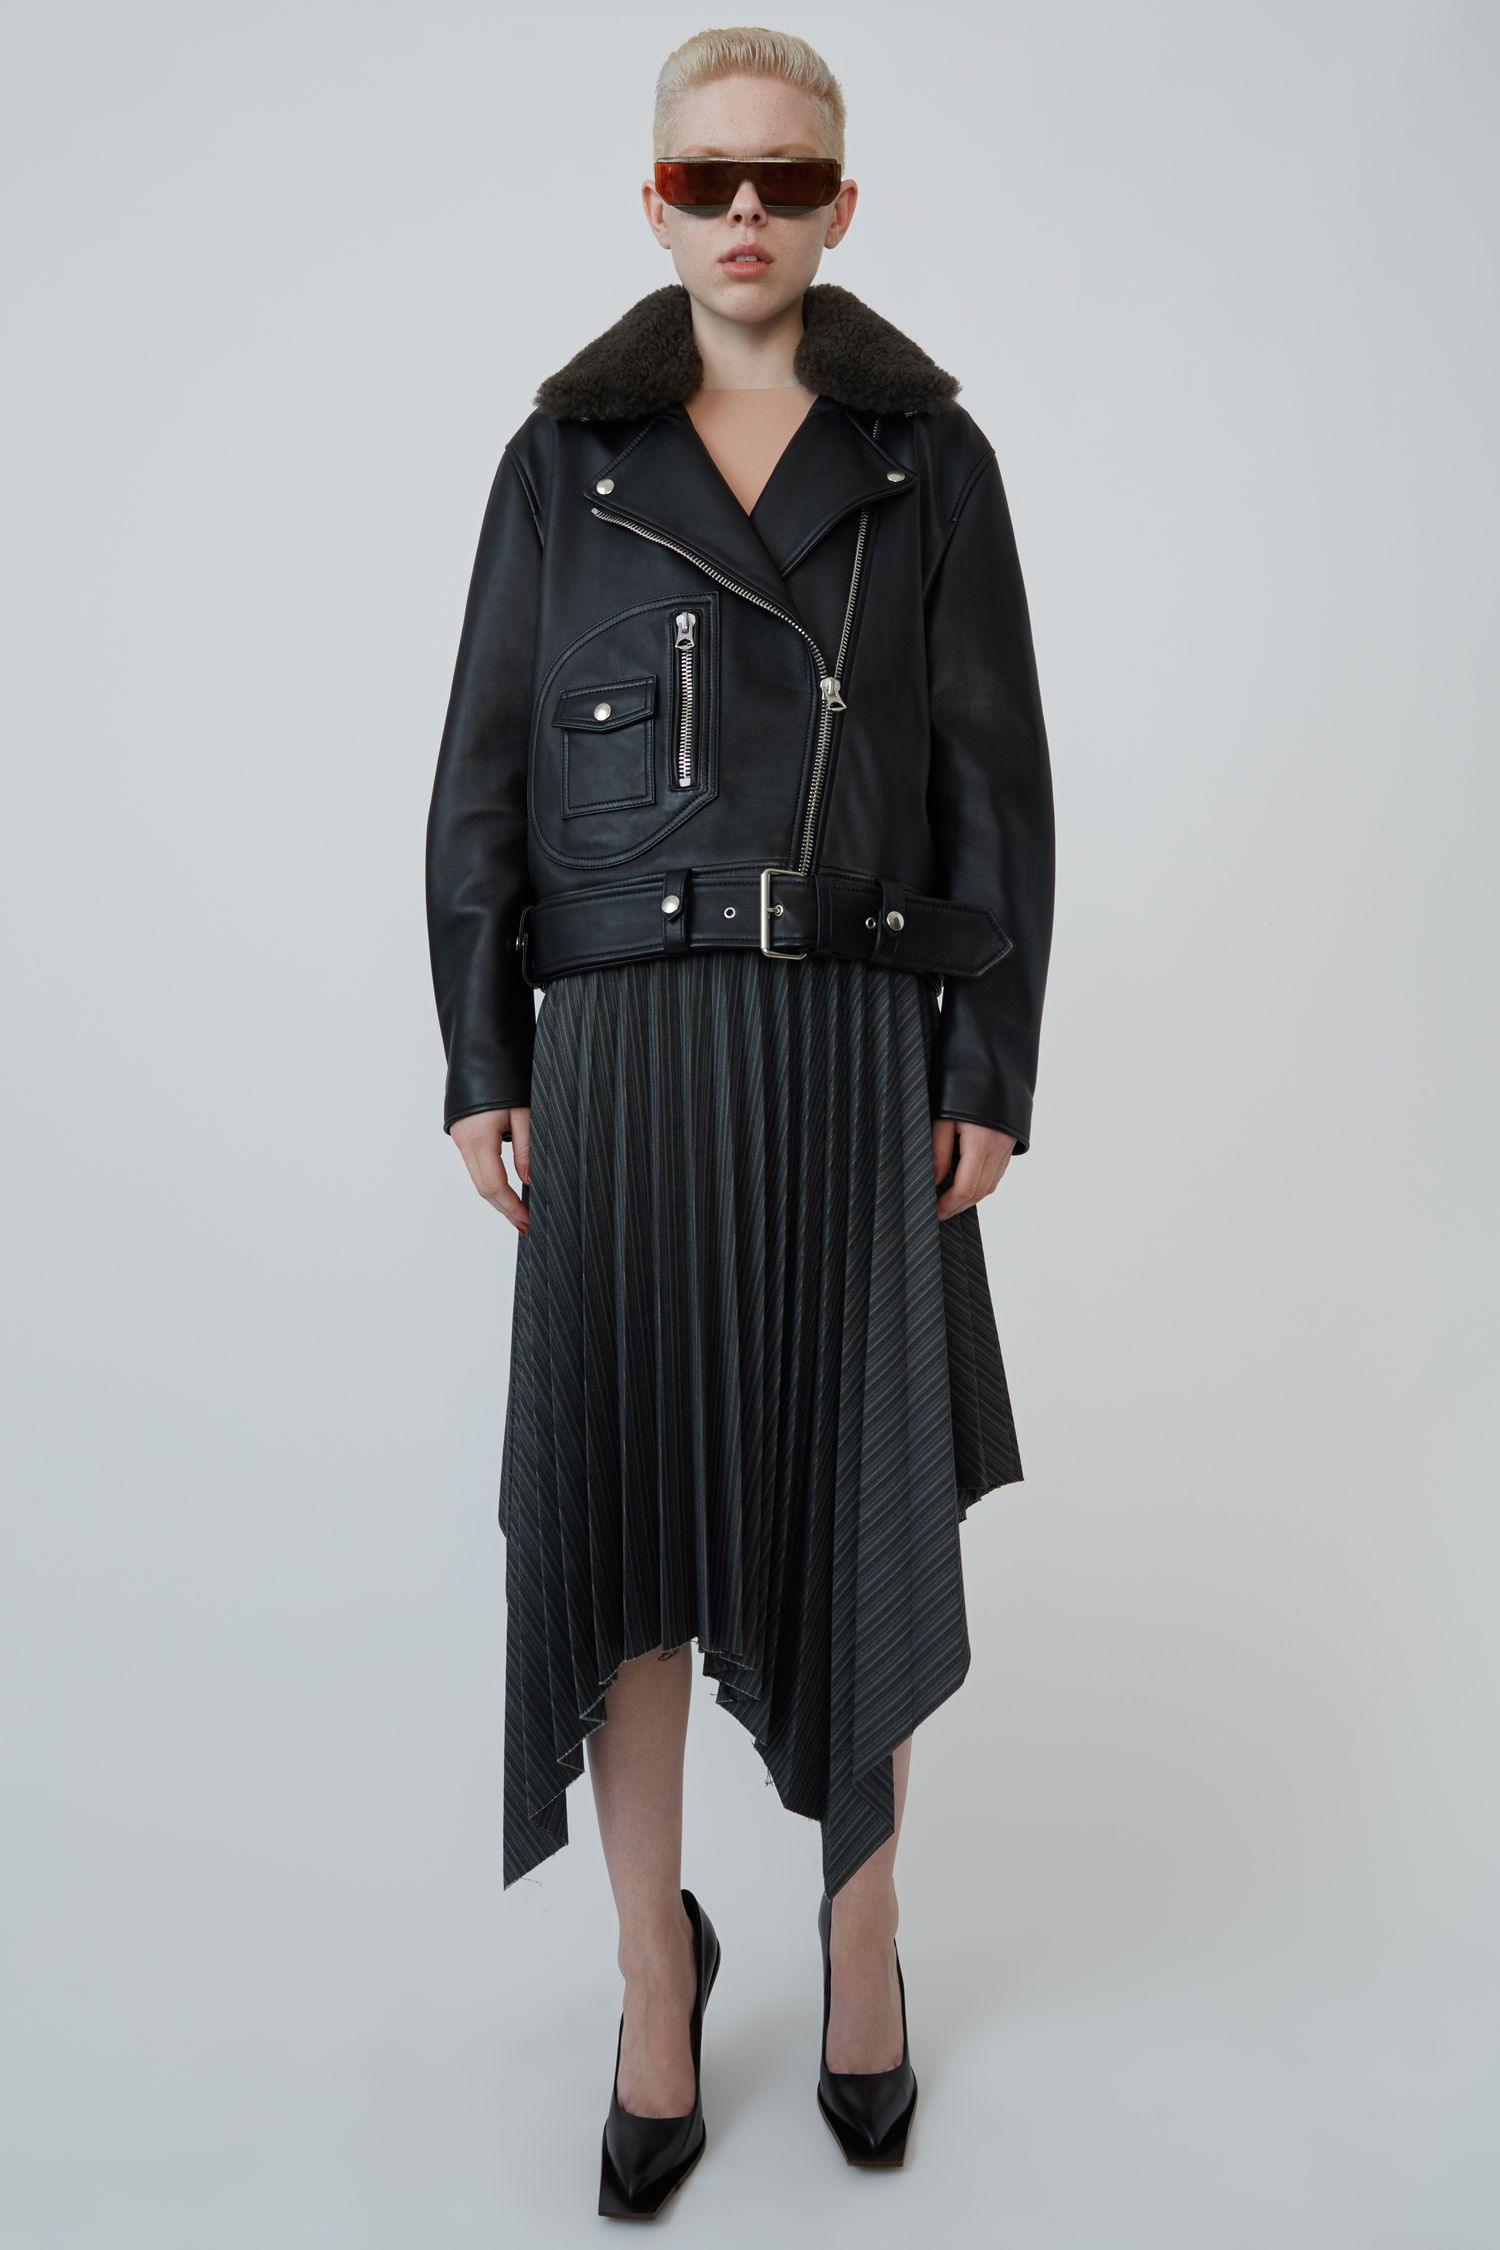 Shearling Collar Leather Biker Jacket, Black from Acne Studios